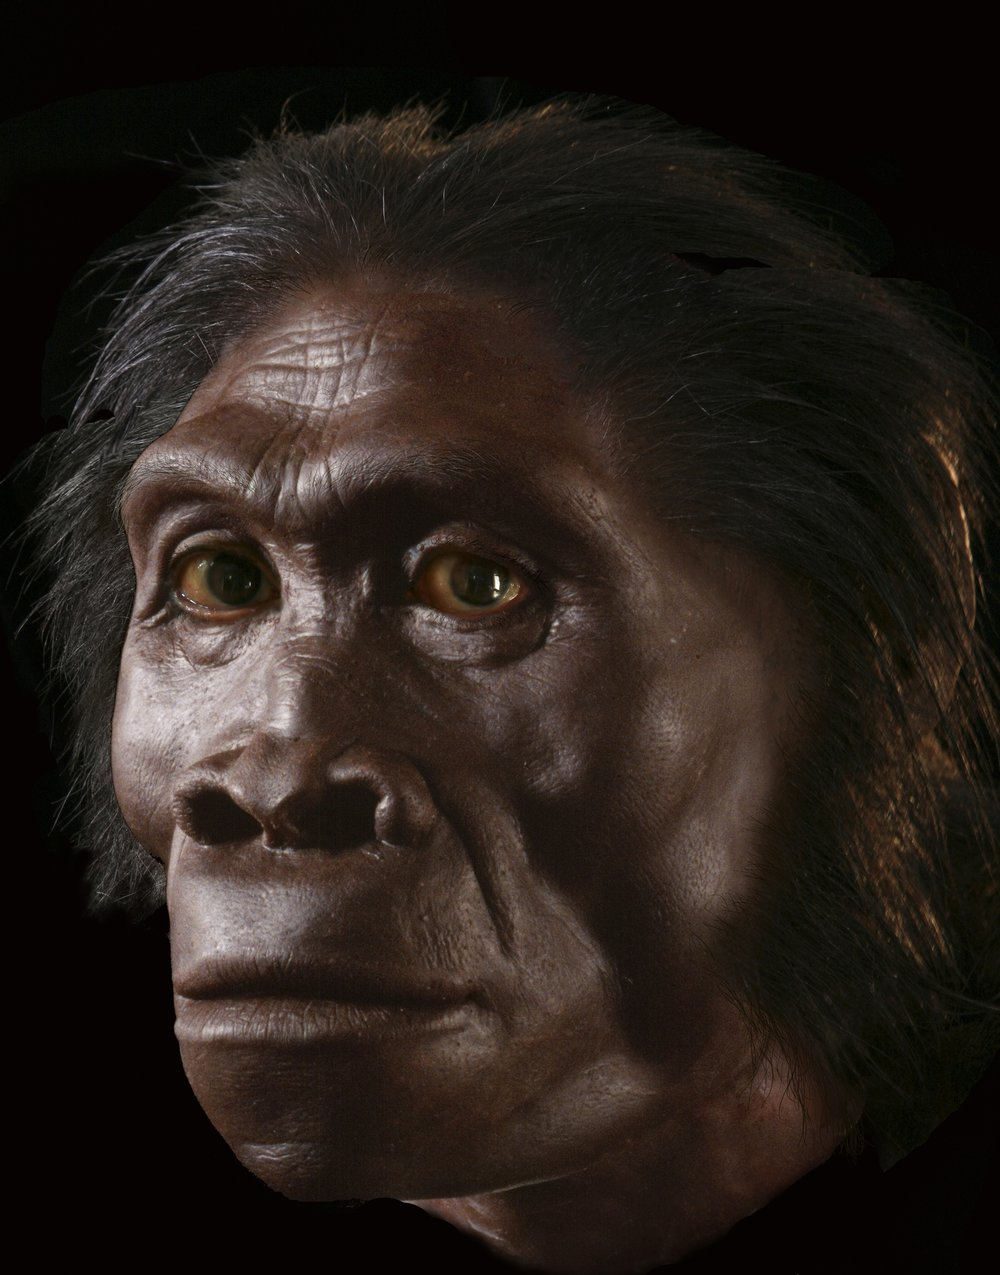 Image 774  Homo habilis based on KNM ER 1813.jpg